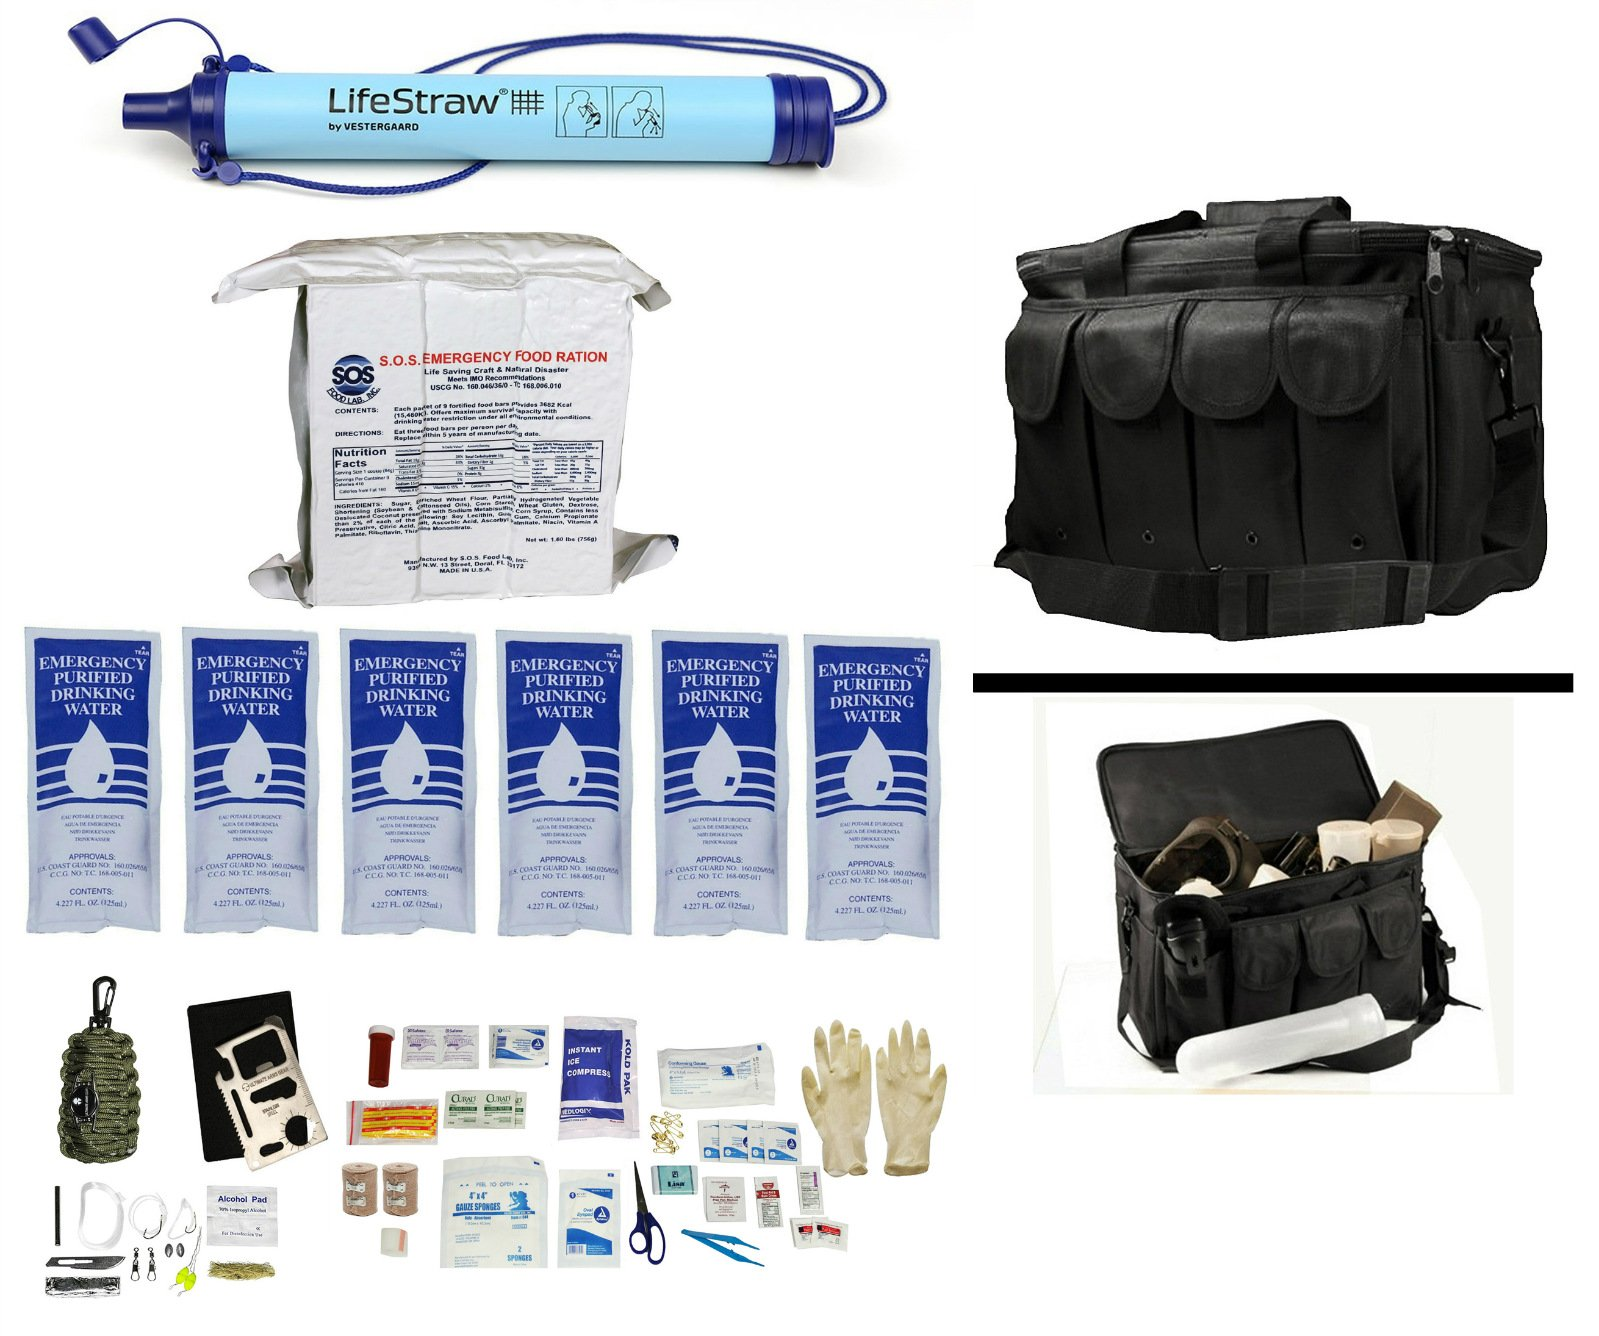 1 Person Supply 3 Day Emergency Bug Out S.O.S. Food Rations, Purified Drinking Water, LifeStraw Personal Water Filter + Ultimate Arms Gear Duty Bag + Survival First Aid Kit & Multi Tool Set